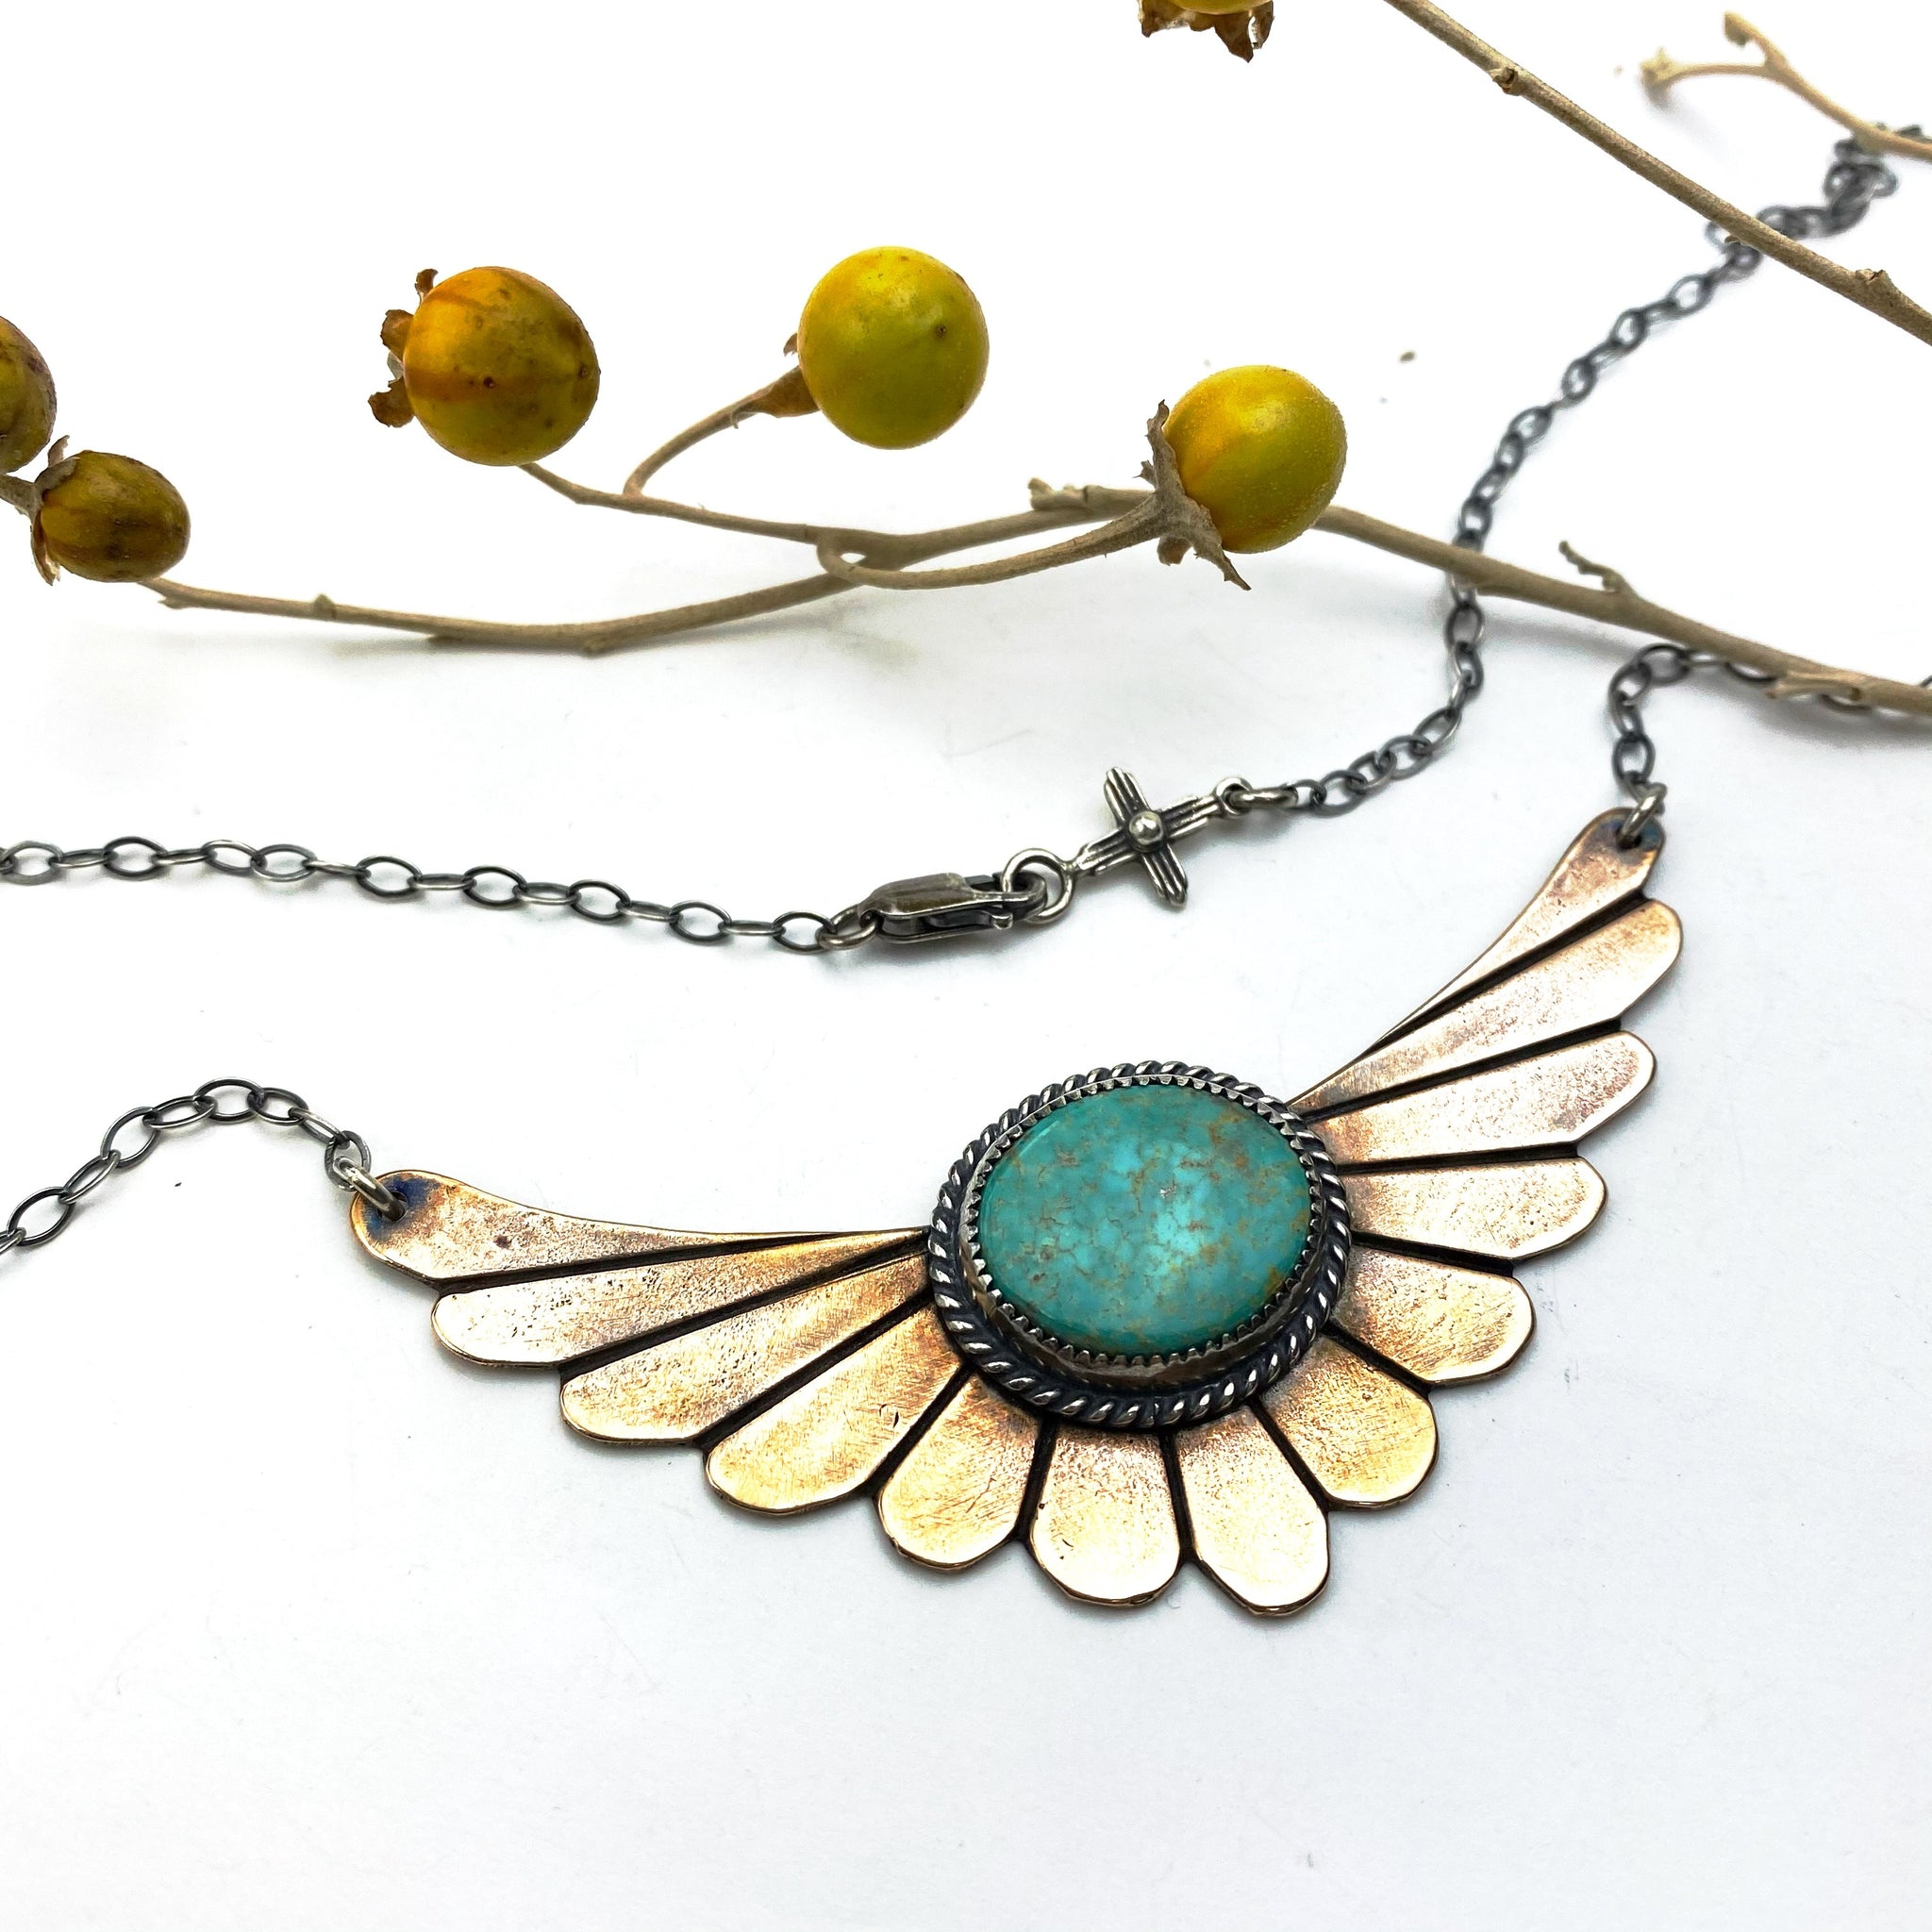 Winged Warrior Necklace